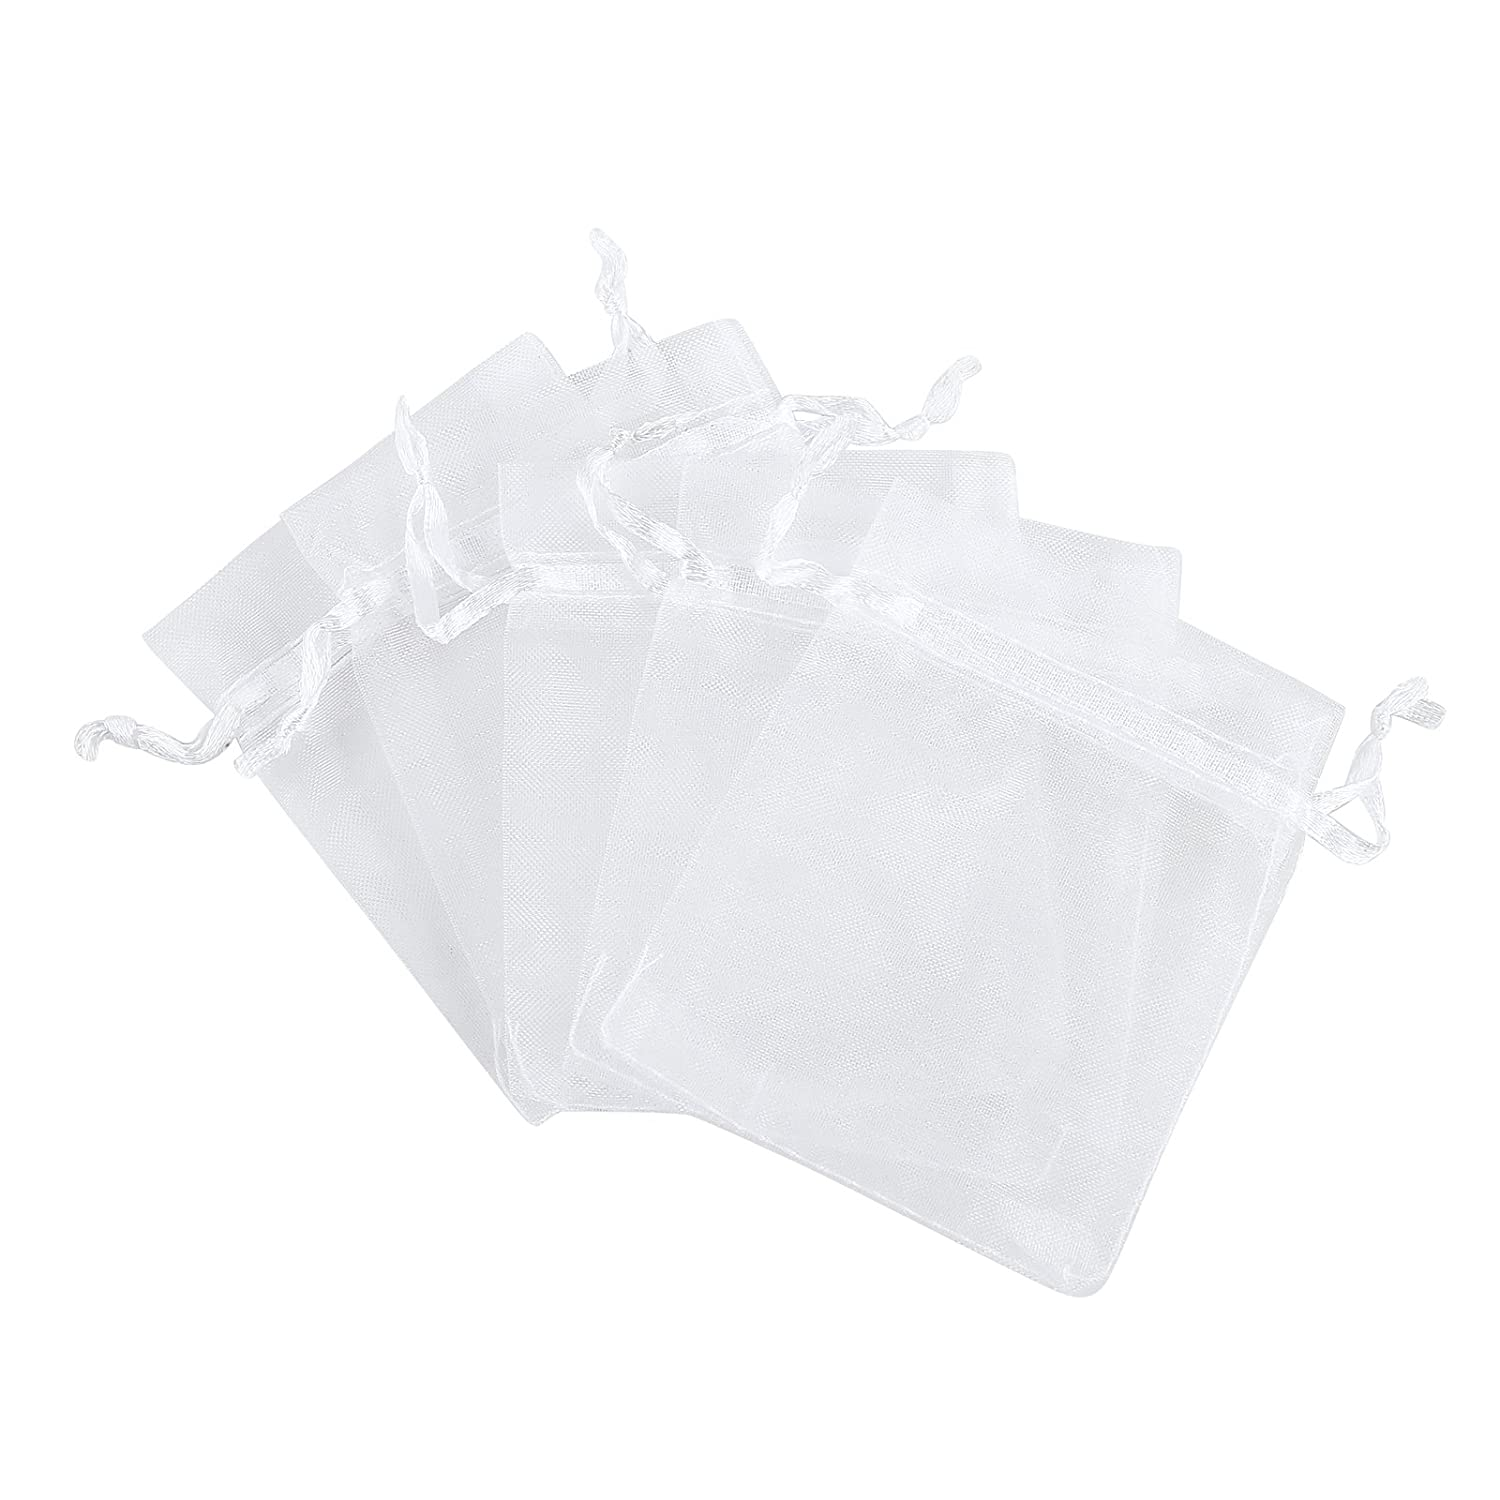 Anleolife 60pcs White Organza Bags 6x9 inch Large Gift Bags Wedding Favors Candy Mesh Pouches Samples Pamphlets Goodies Packages (white)